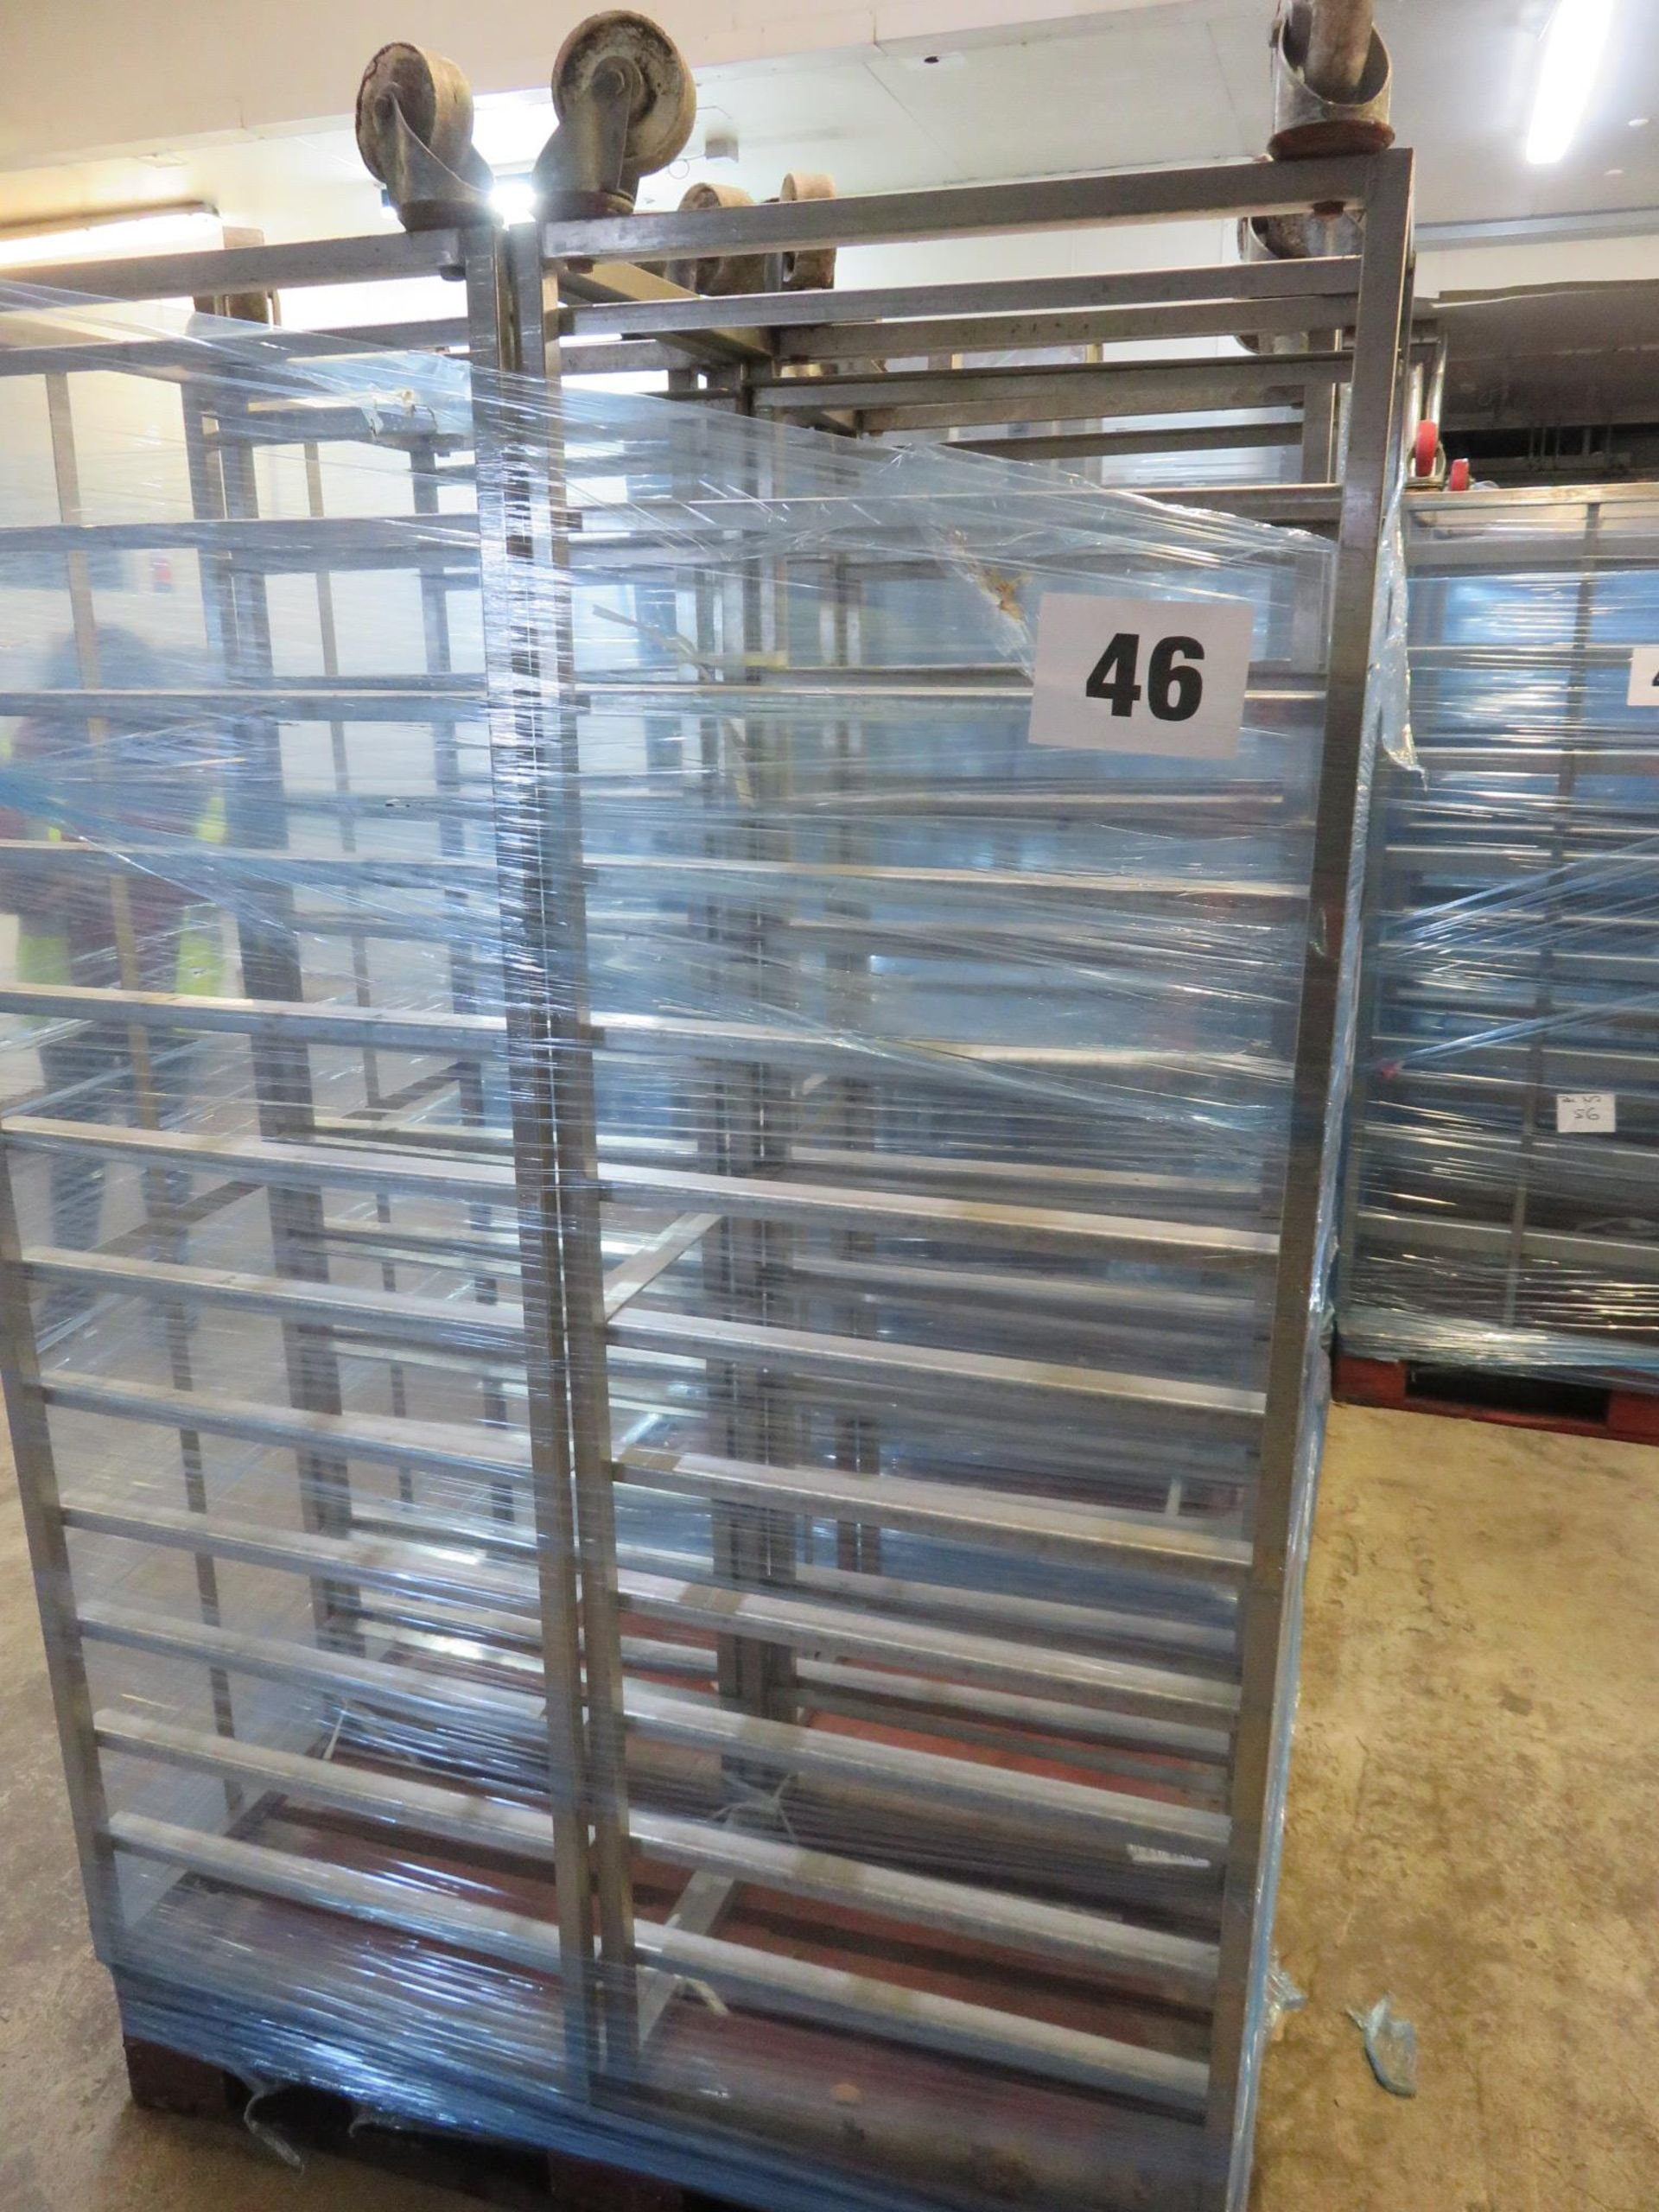 Lot 46 - 4 x S/s Racks capable of taking 12 trays. Approx. 430 x 650 x 1800mm high. On Wheels.LO£20